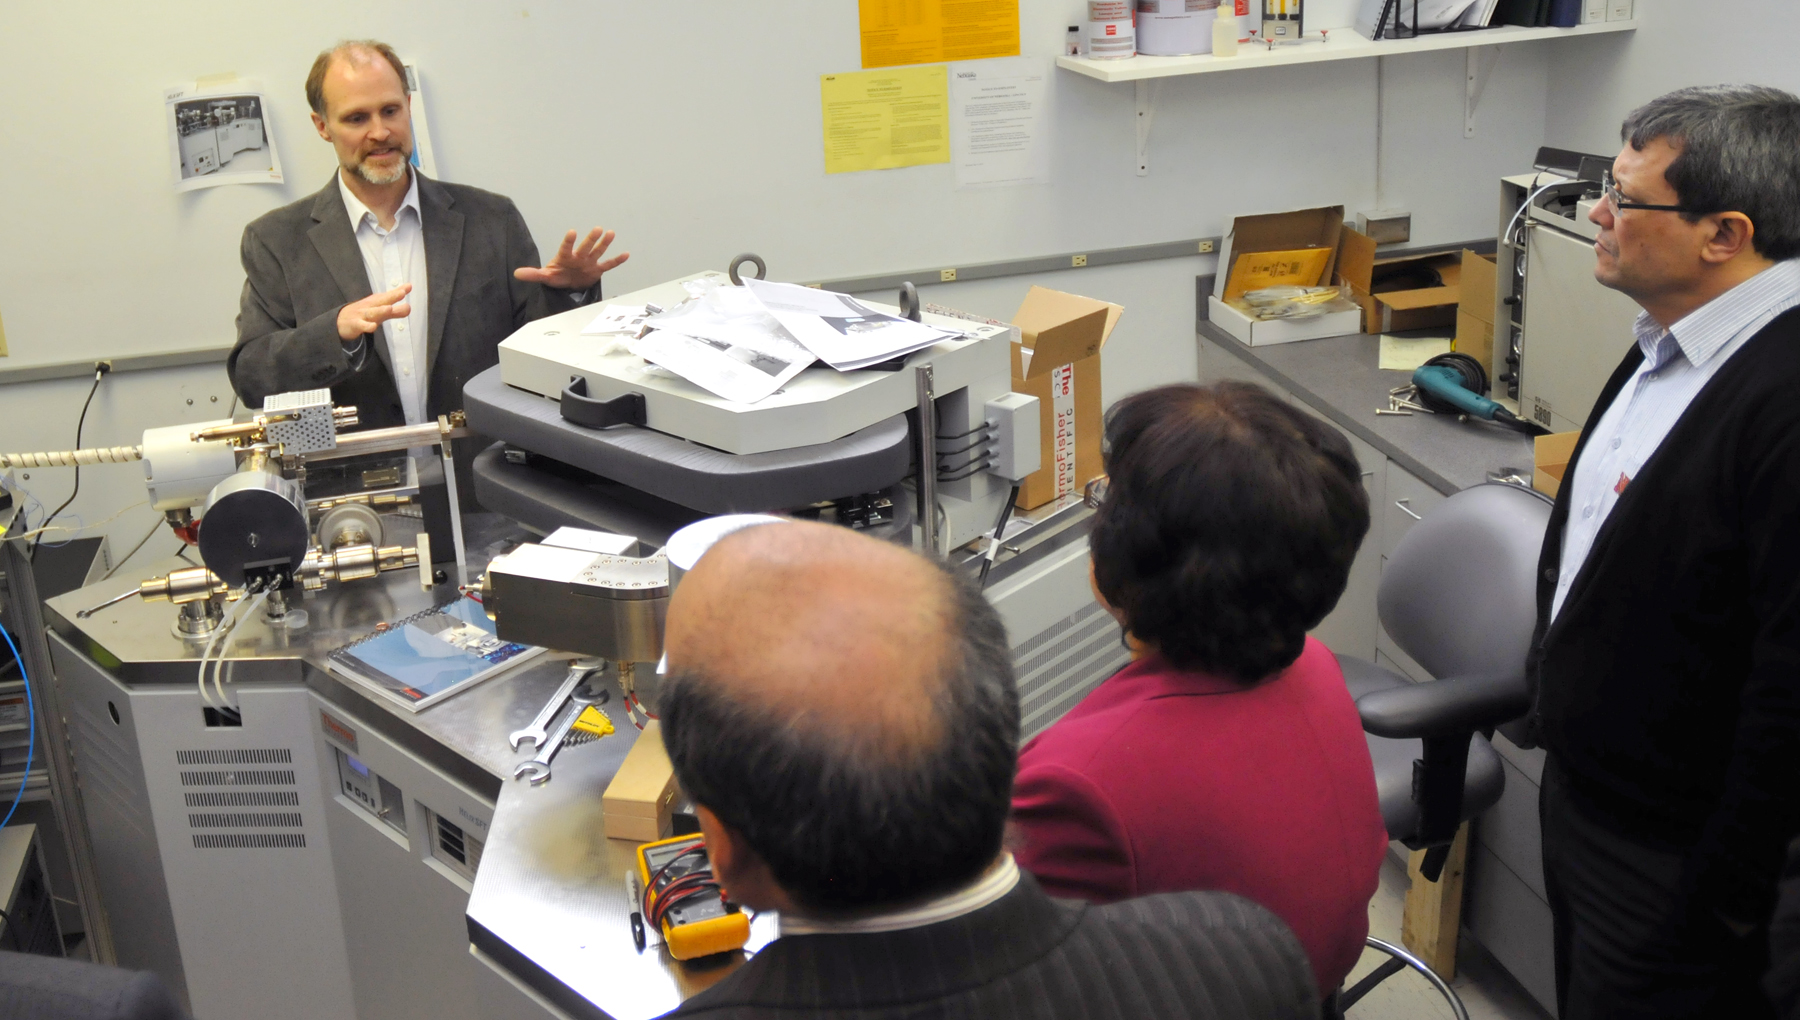 Dan Snow, director of services at UNL's Water Sciences Laboratory, discusses a nitrogen gas mass spectromenter with members of the Founders Committee on March 21.